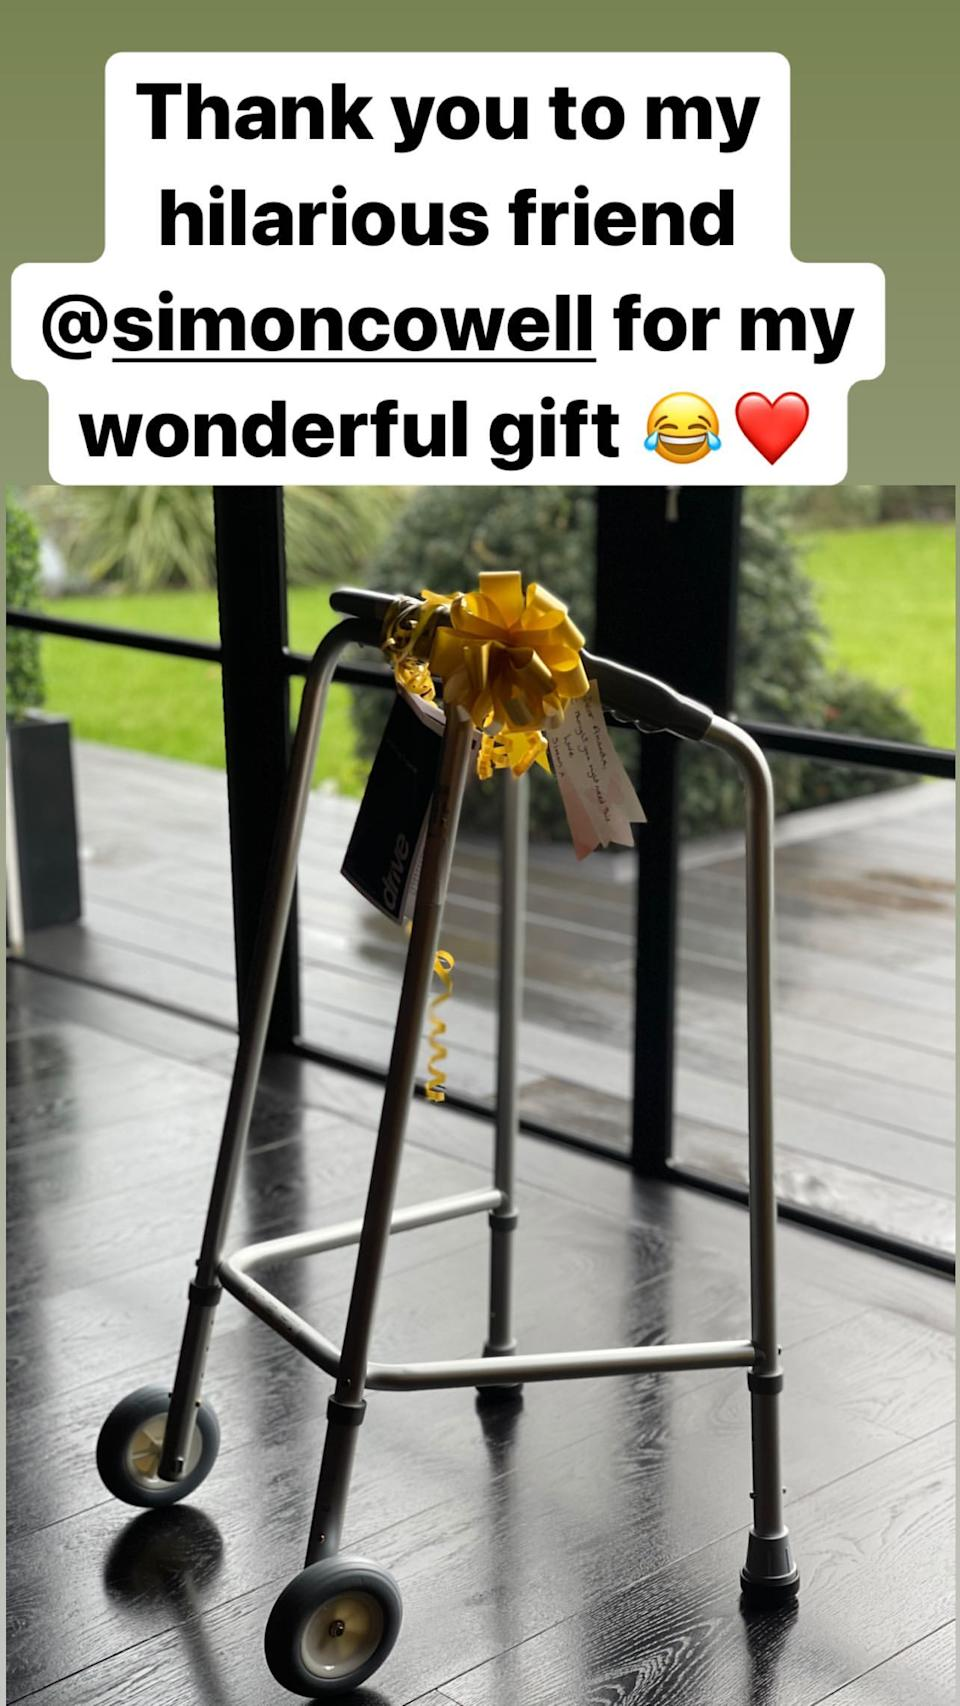 Amanda revealed her friend Simon Cowell had jokingly sent her a walking frame with a yellow bow. Photo: Instagram/Amanda Holden